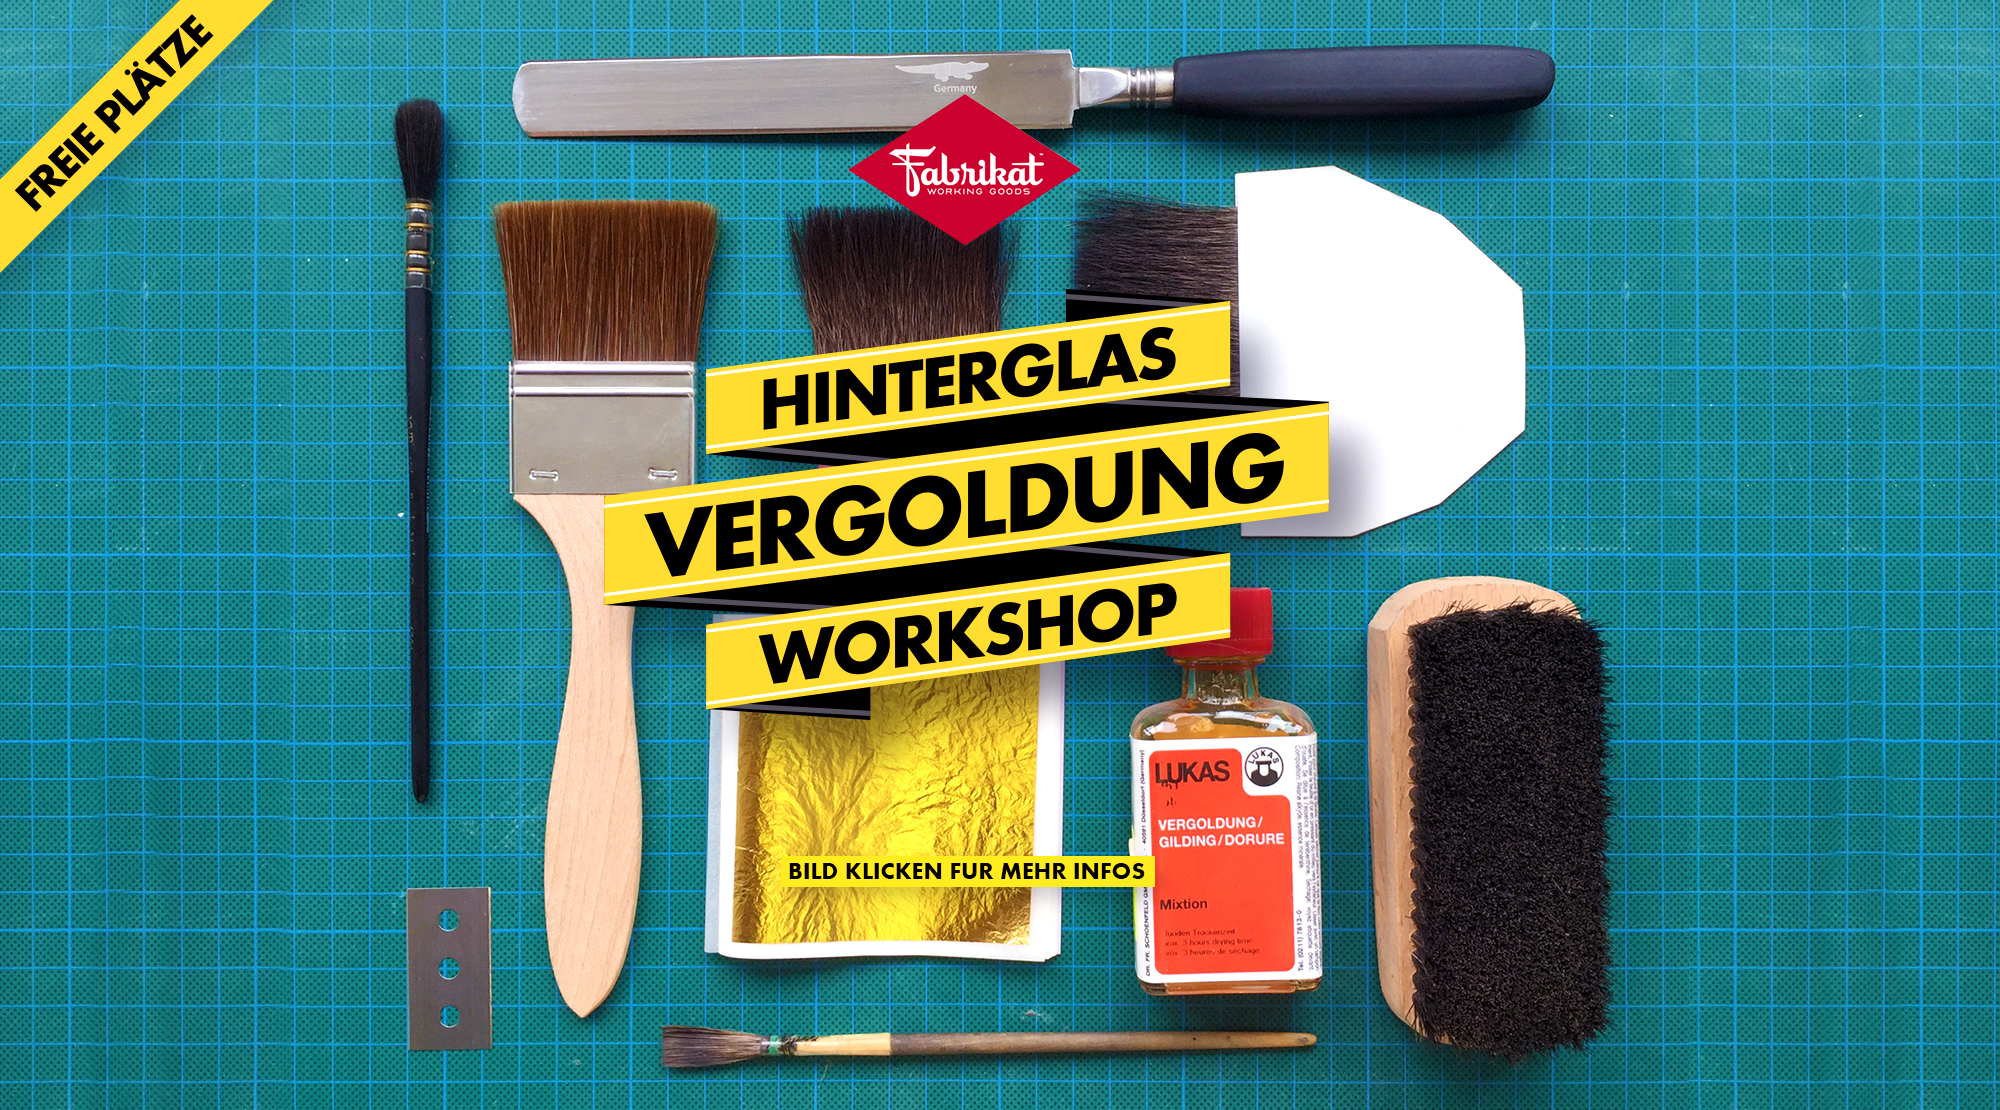 Hinterglasvergoldung Workshop im Fabrikat 21.-22. Oktober 2017 mit Mathias Truniger